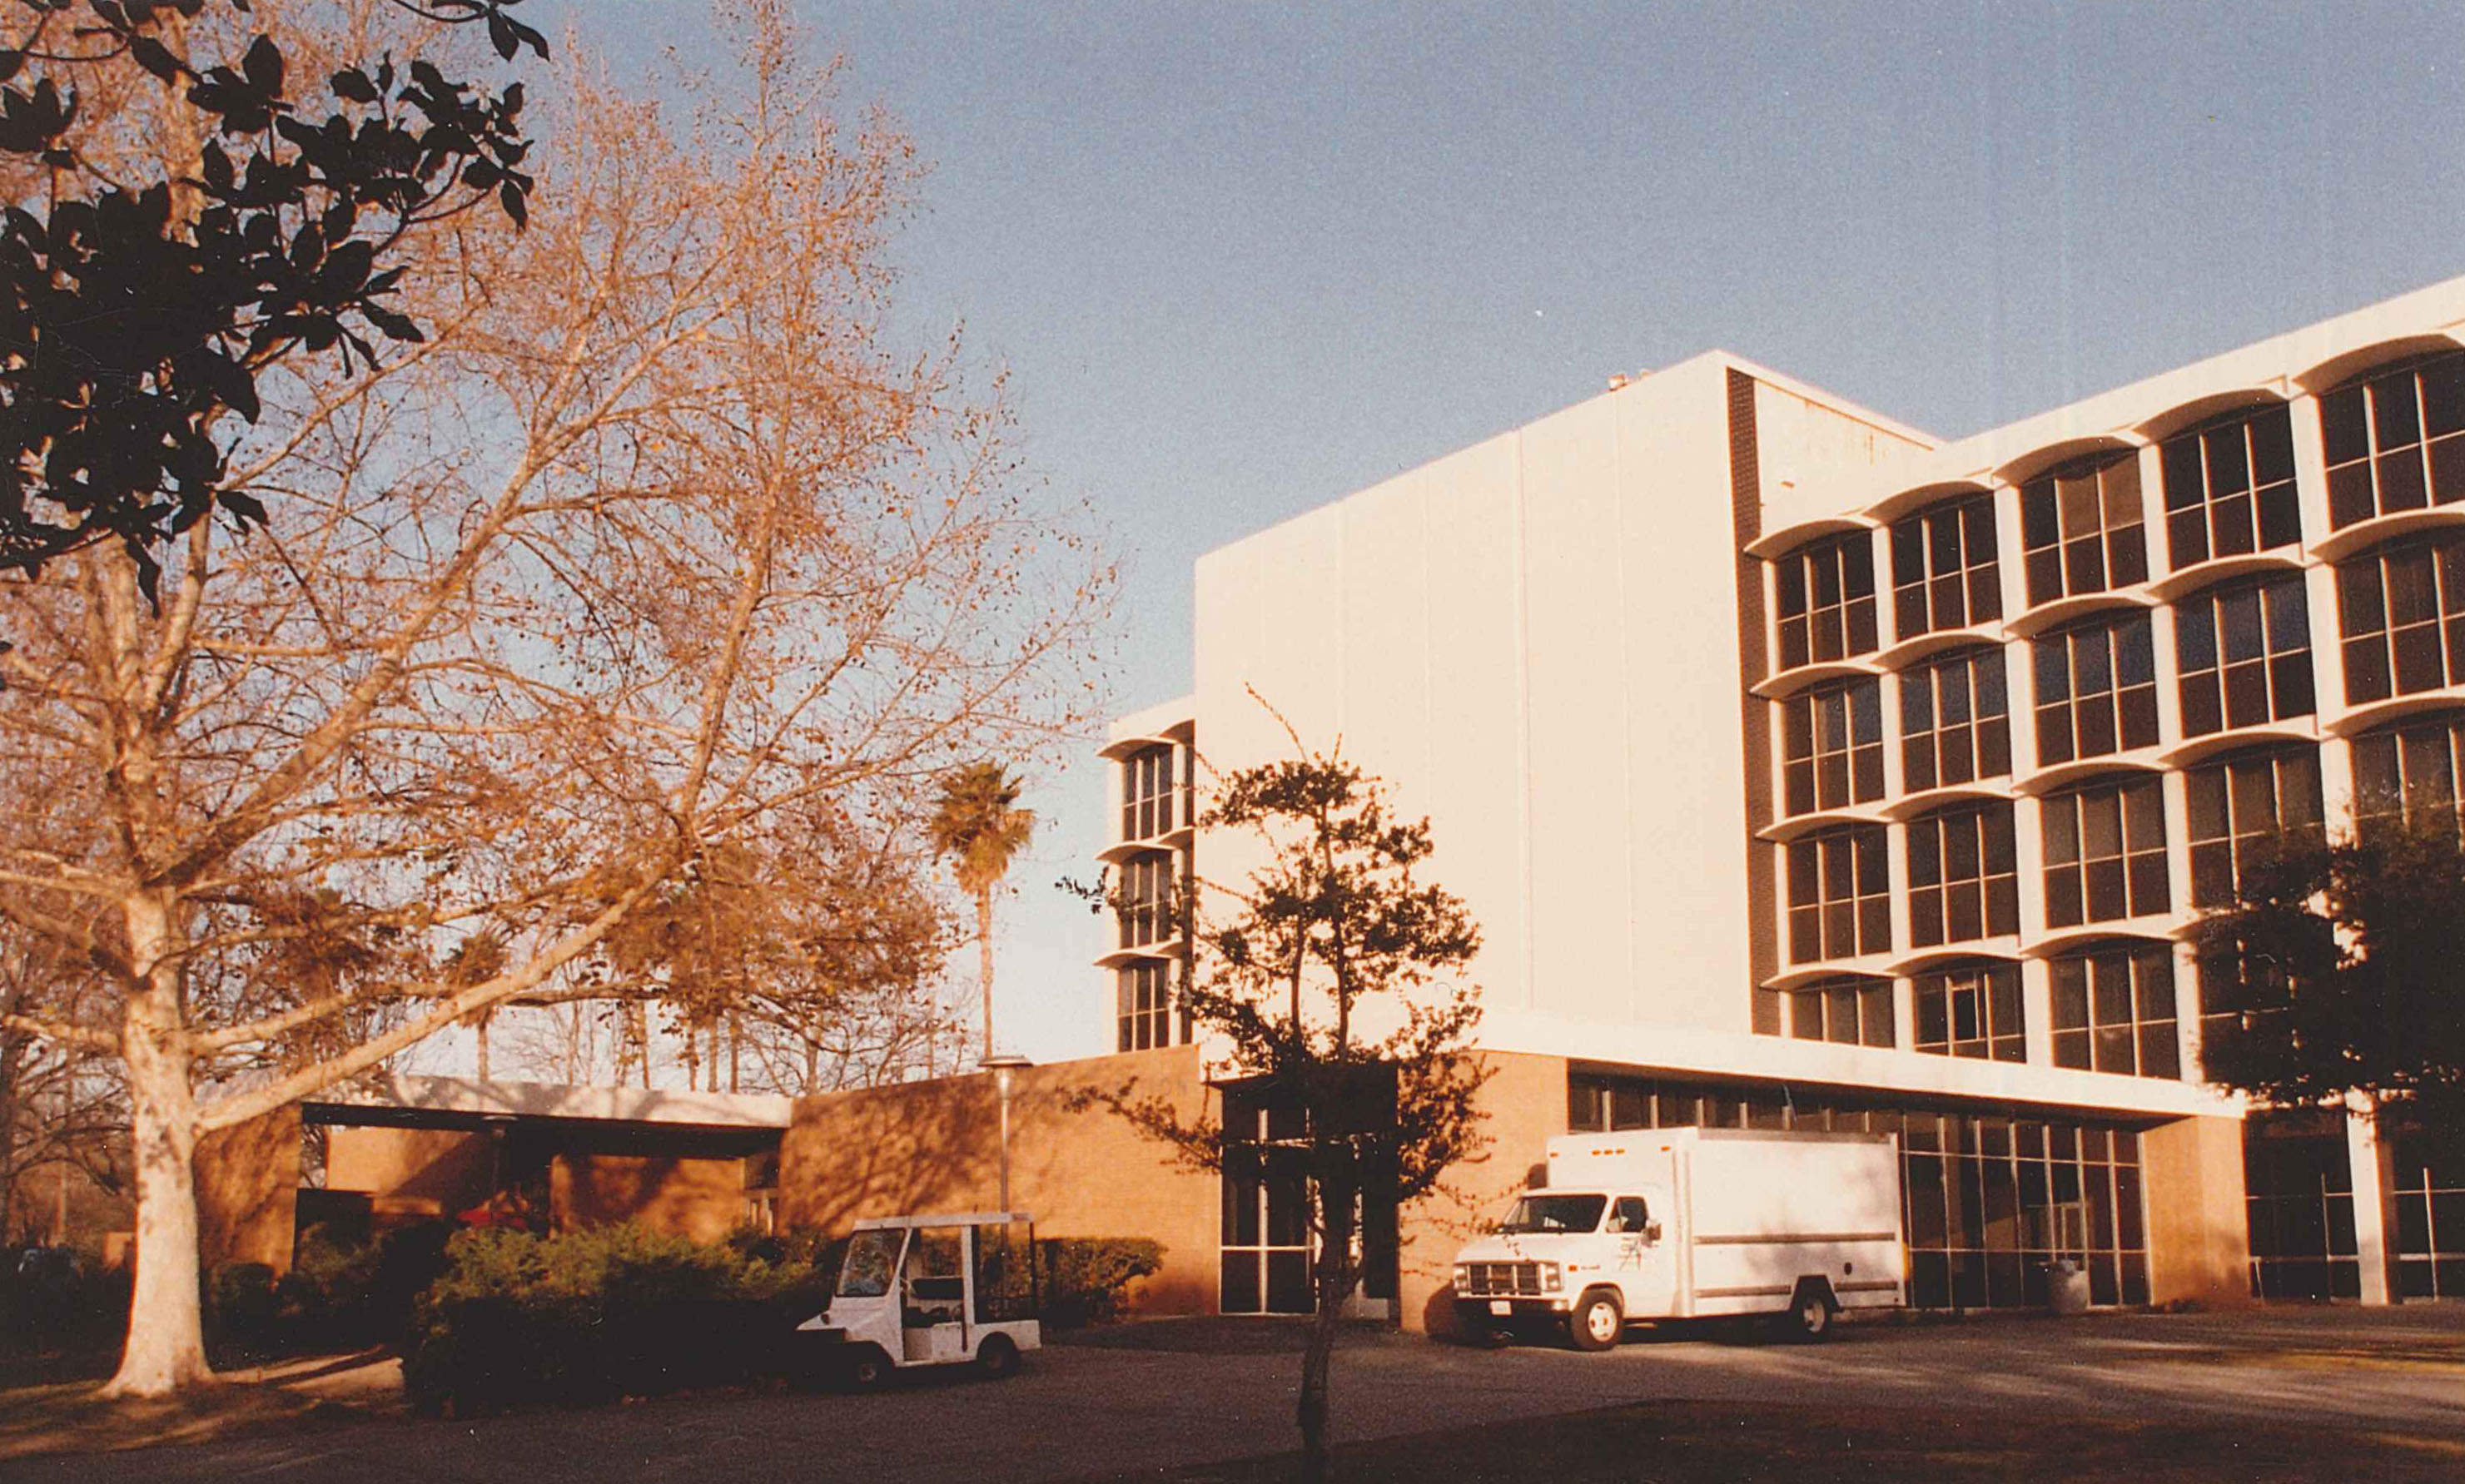 View of the (former) Administration Building on the campus of California State University in Northridge.